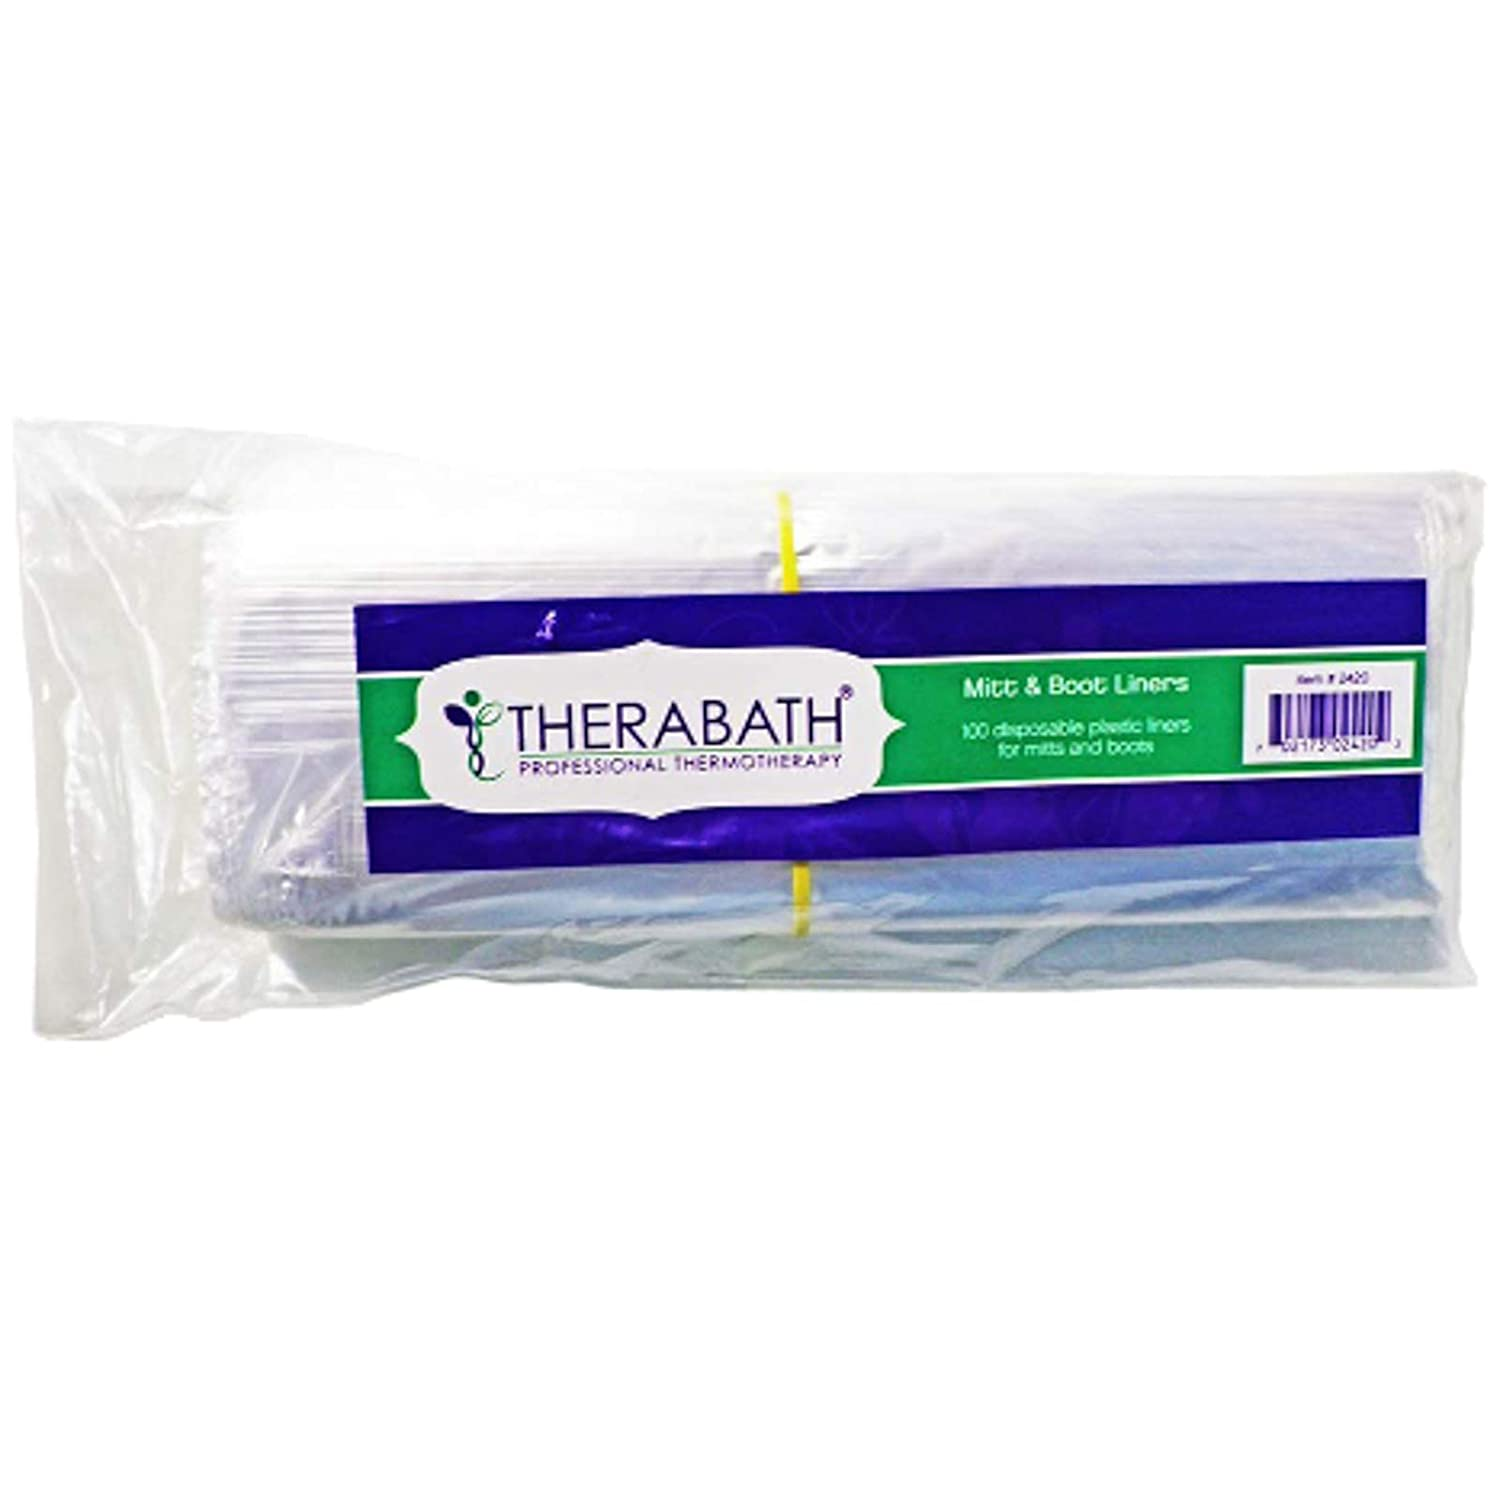 Therabath - 5% OFF 81030832 Milwaukee Mall Liners for Mitts or 100 Boots